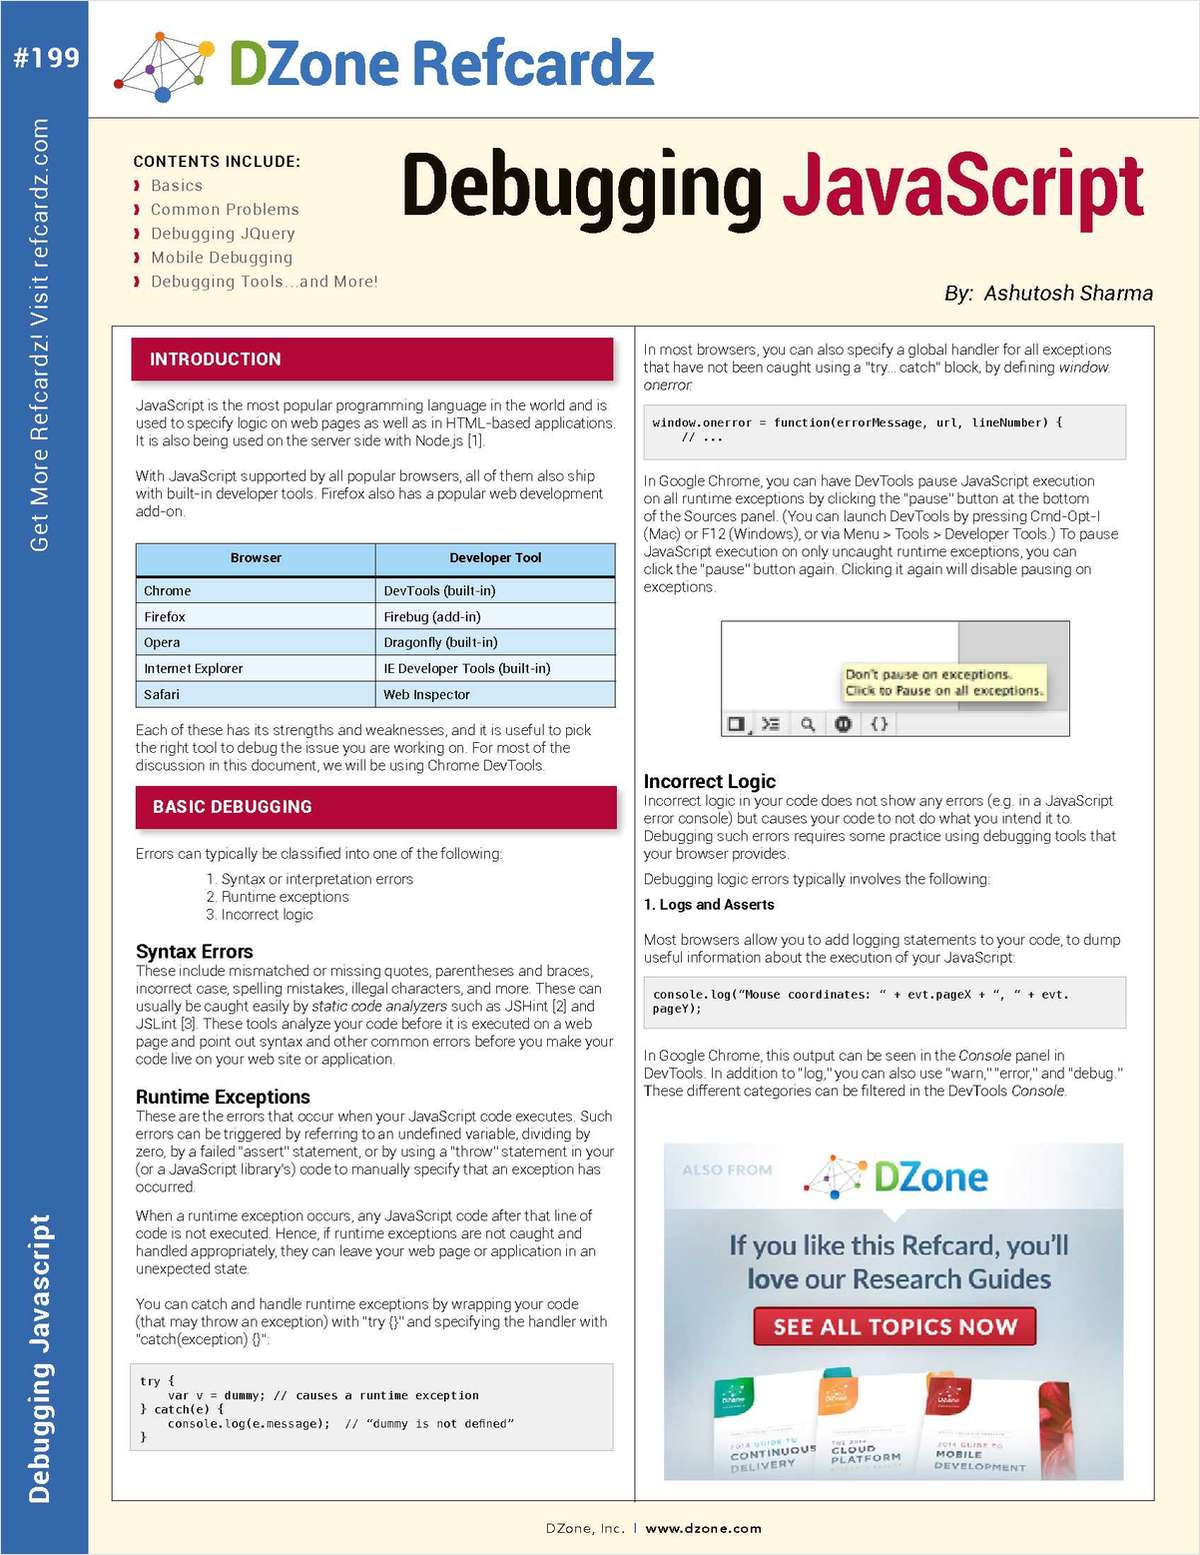 The Essential Debugging JavaScript Cheat Sheet